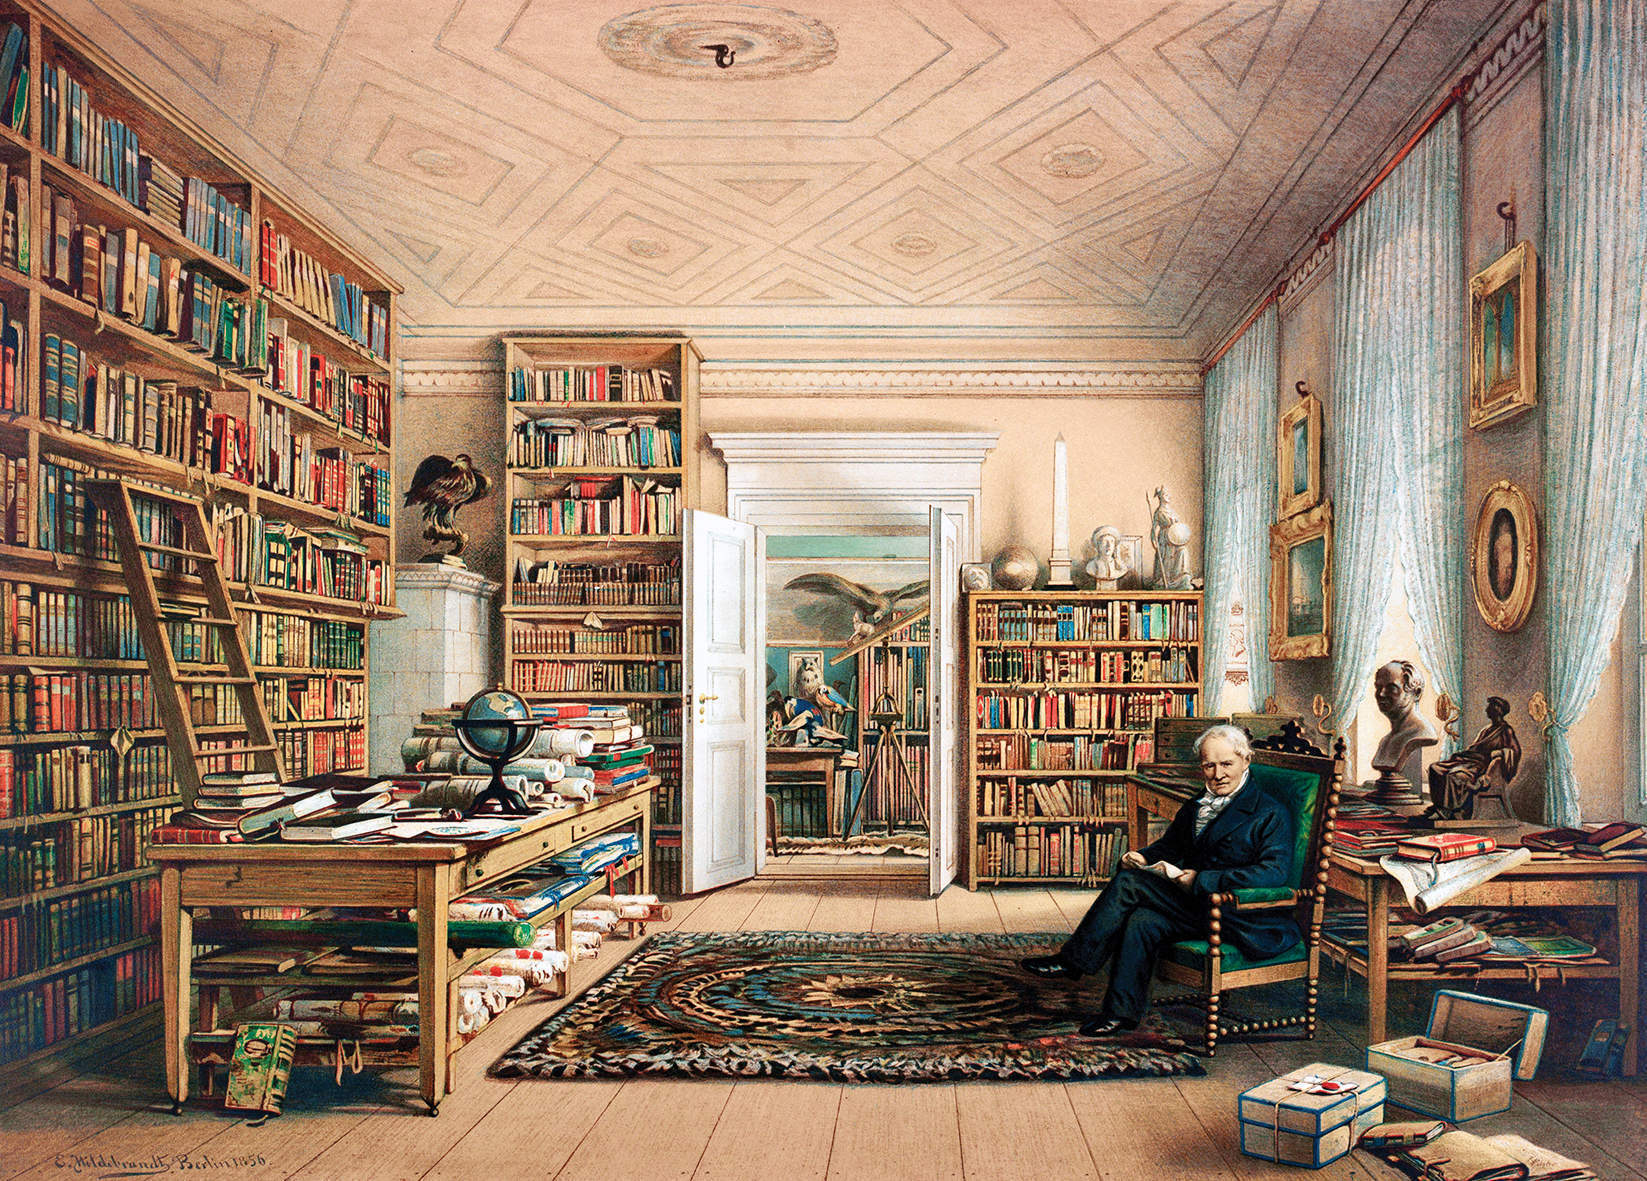 Rediscovering Alexander von Humboldt and his lifelong, Ulyssean quest for nature